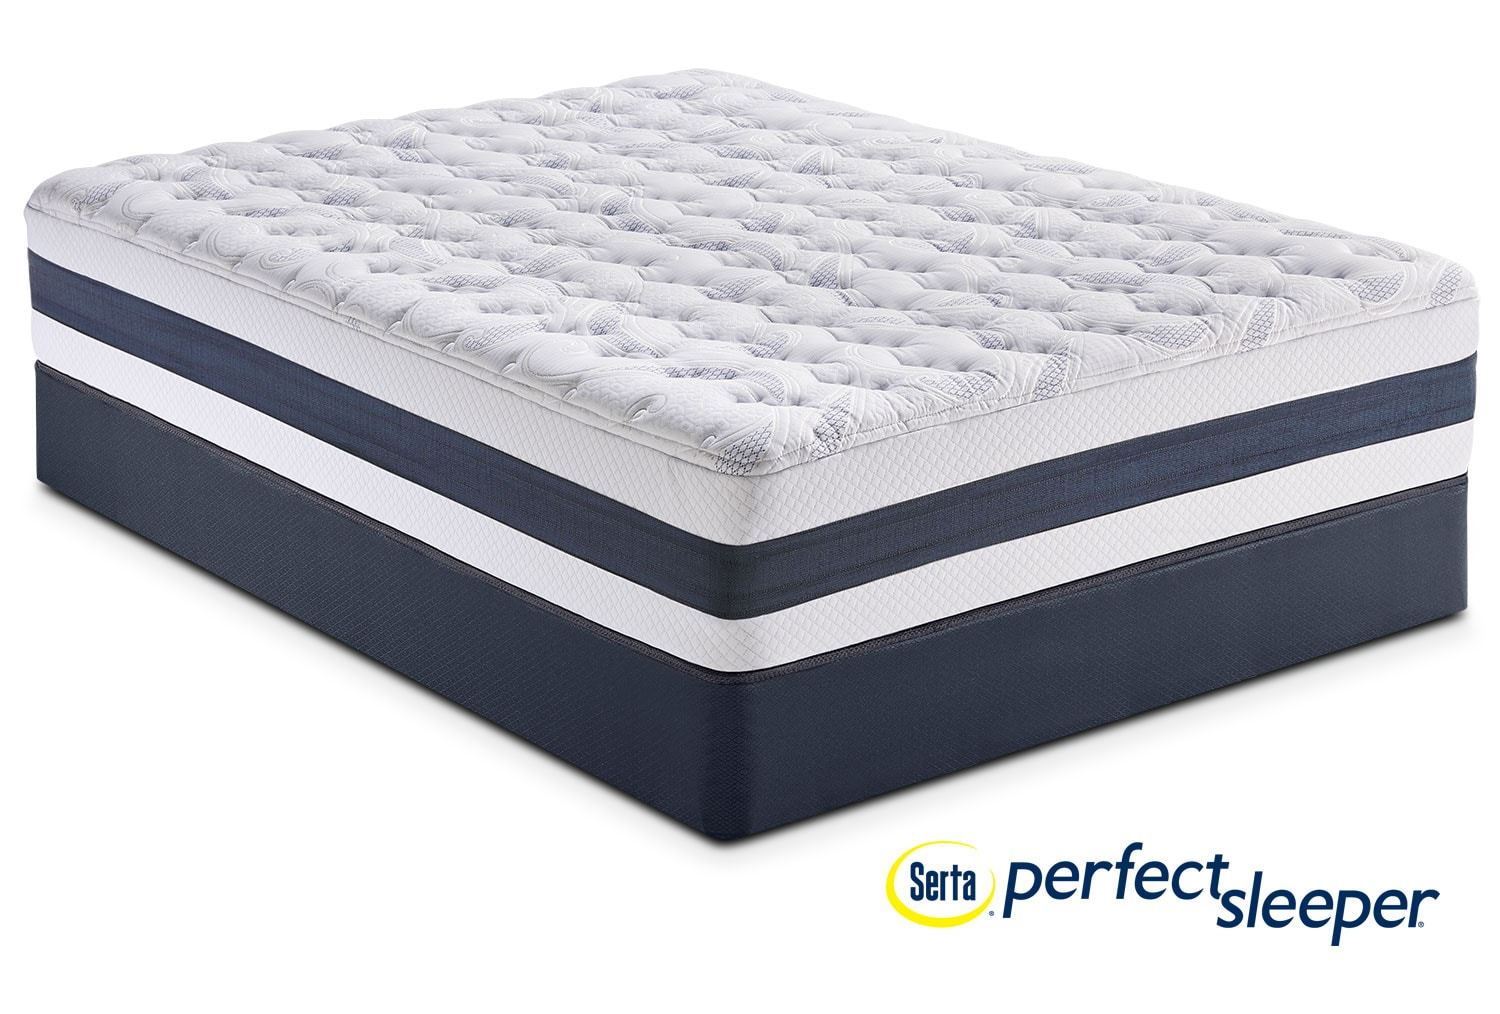 Mattresses and Bedding - Carson Ridge Twin Mattress and Foundation Set